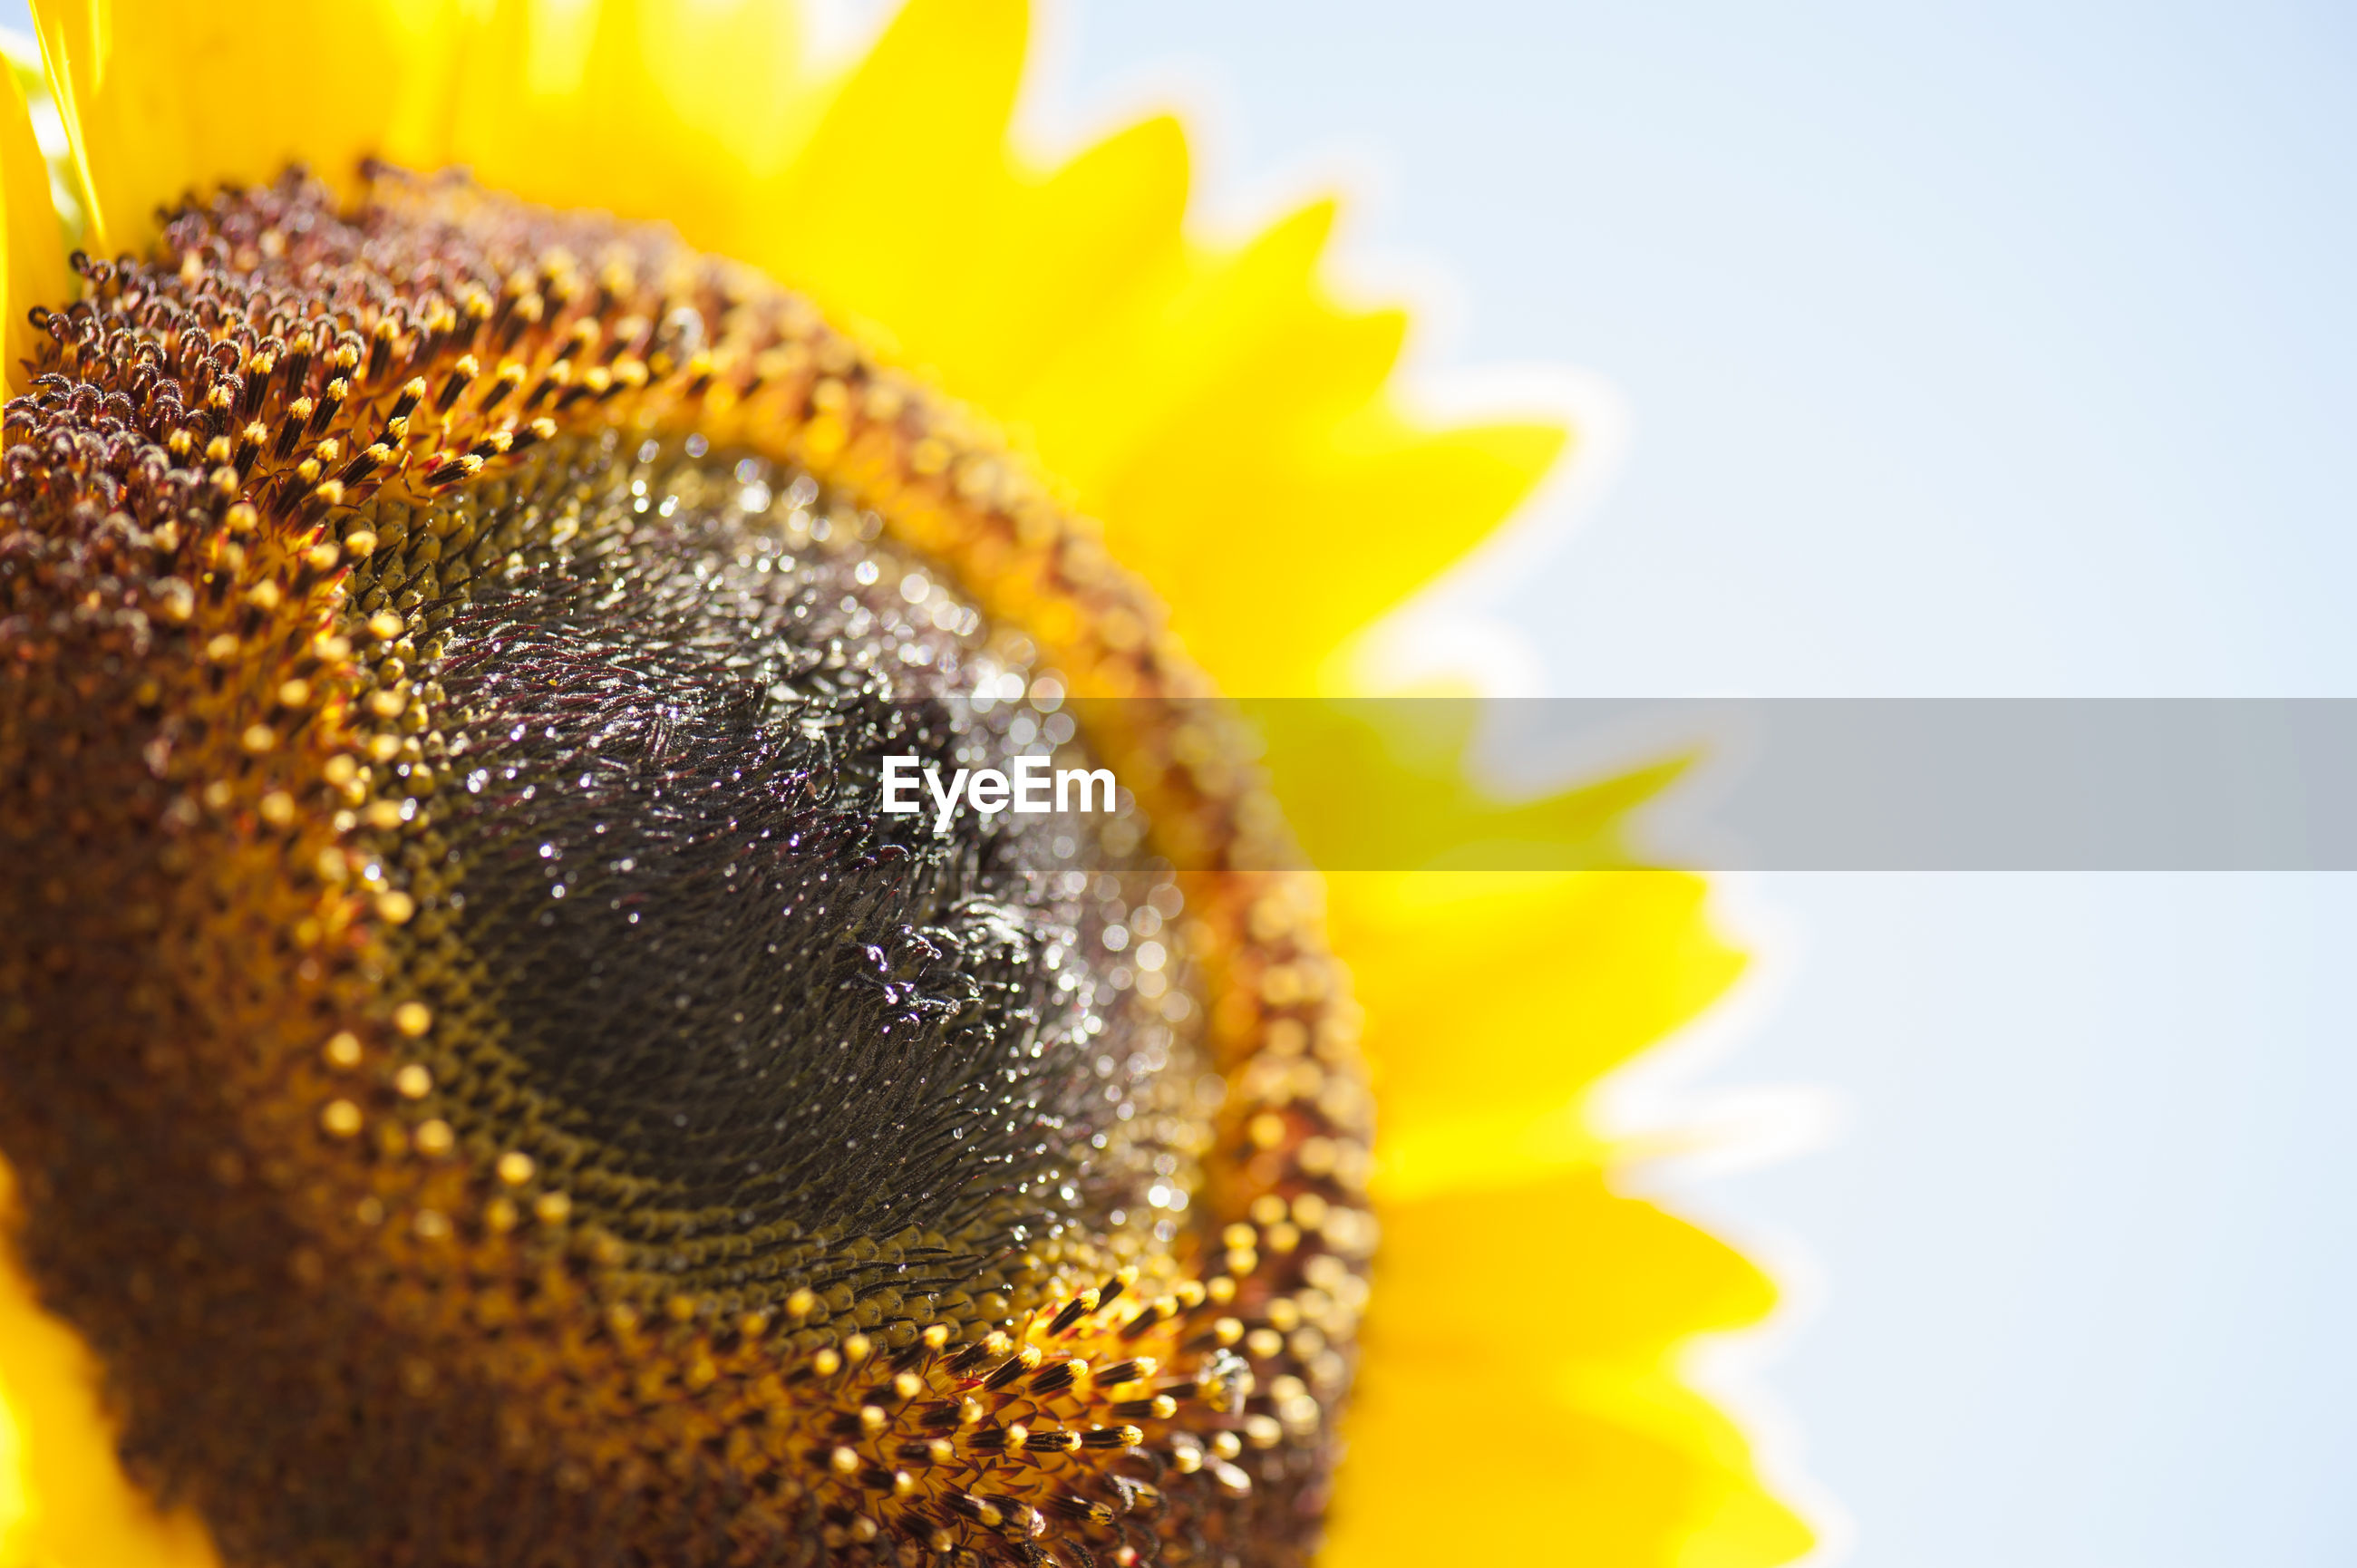 CLOSE-UP OF SUNFLOWER AGAINST YELLOW BACKGROUND